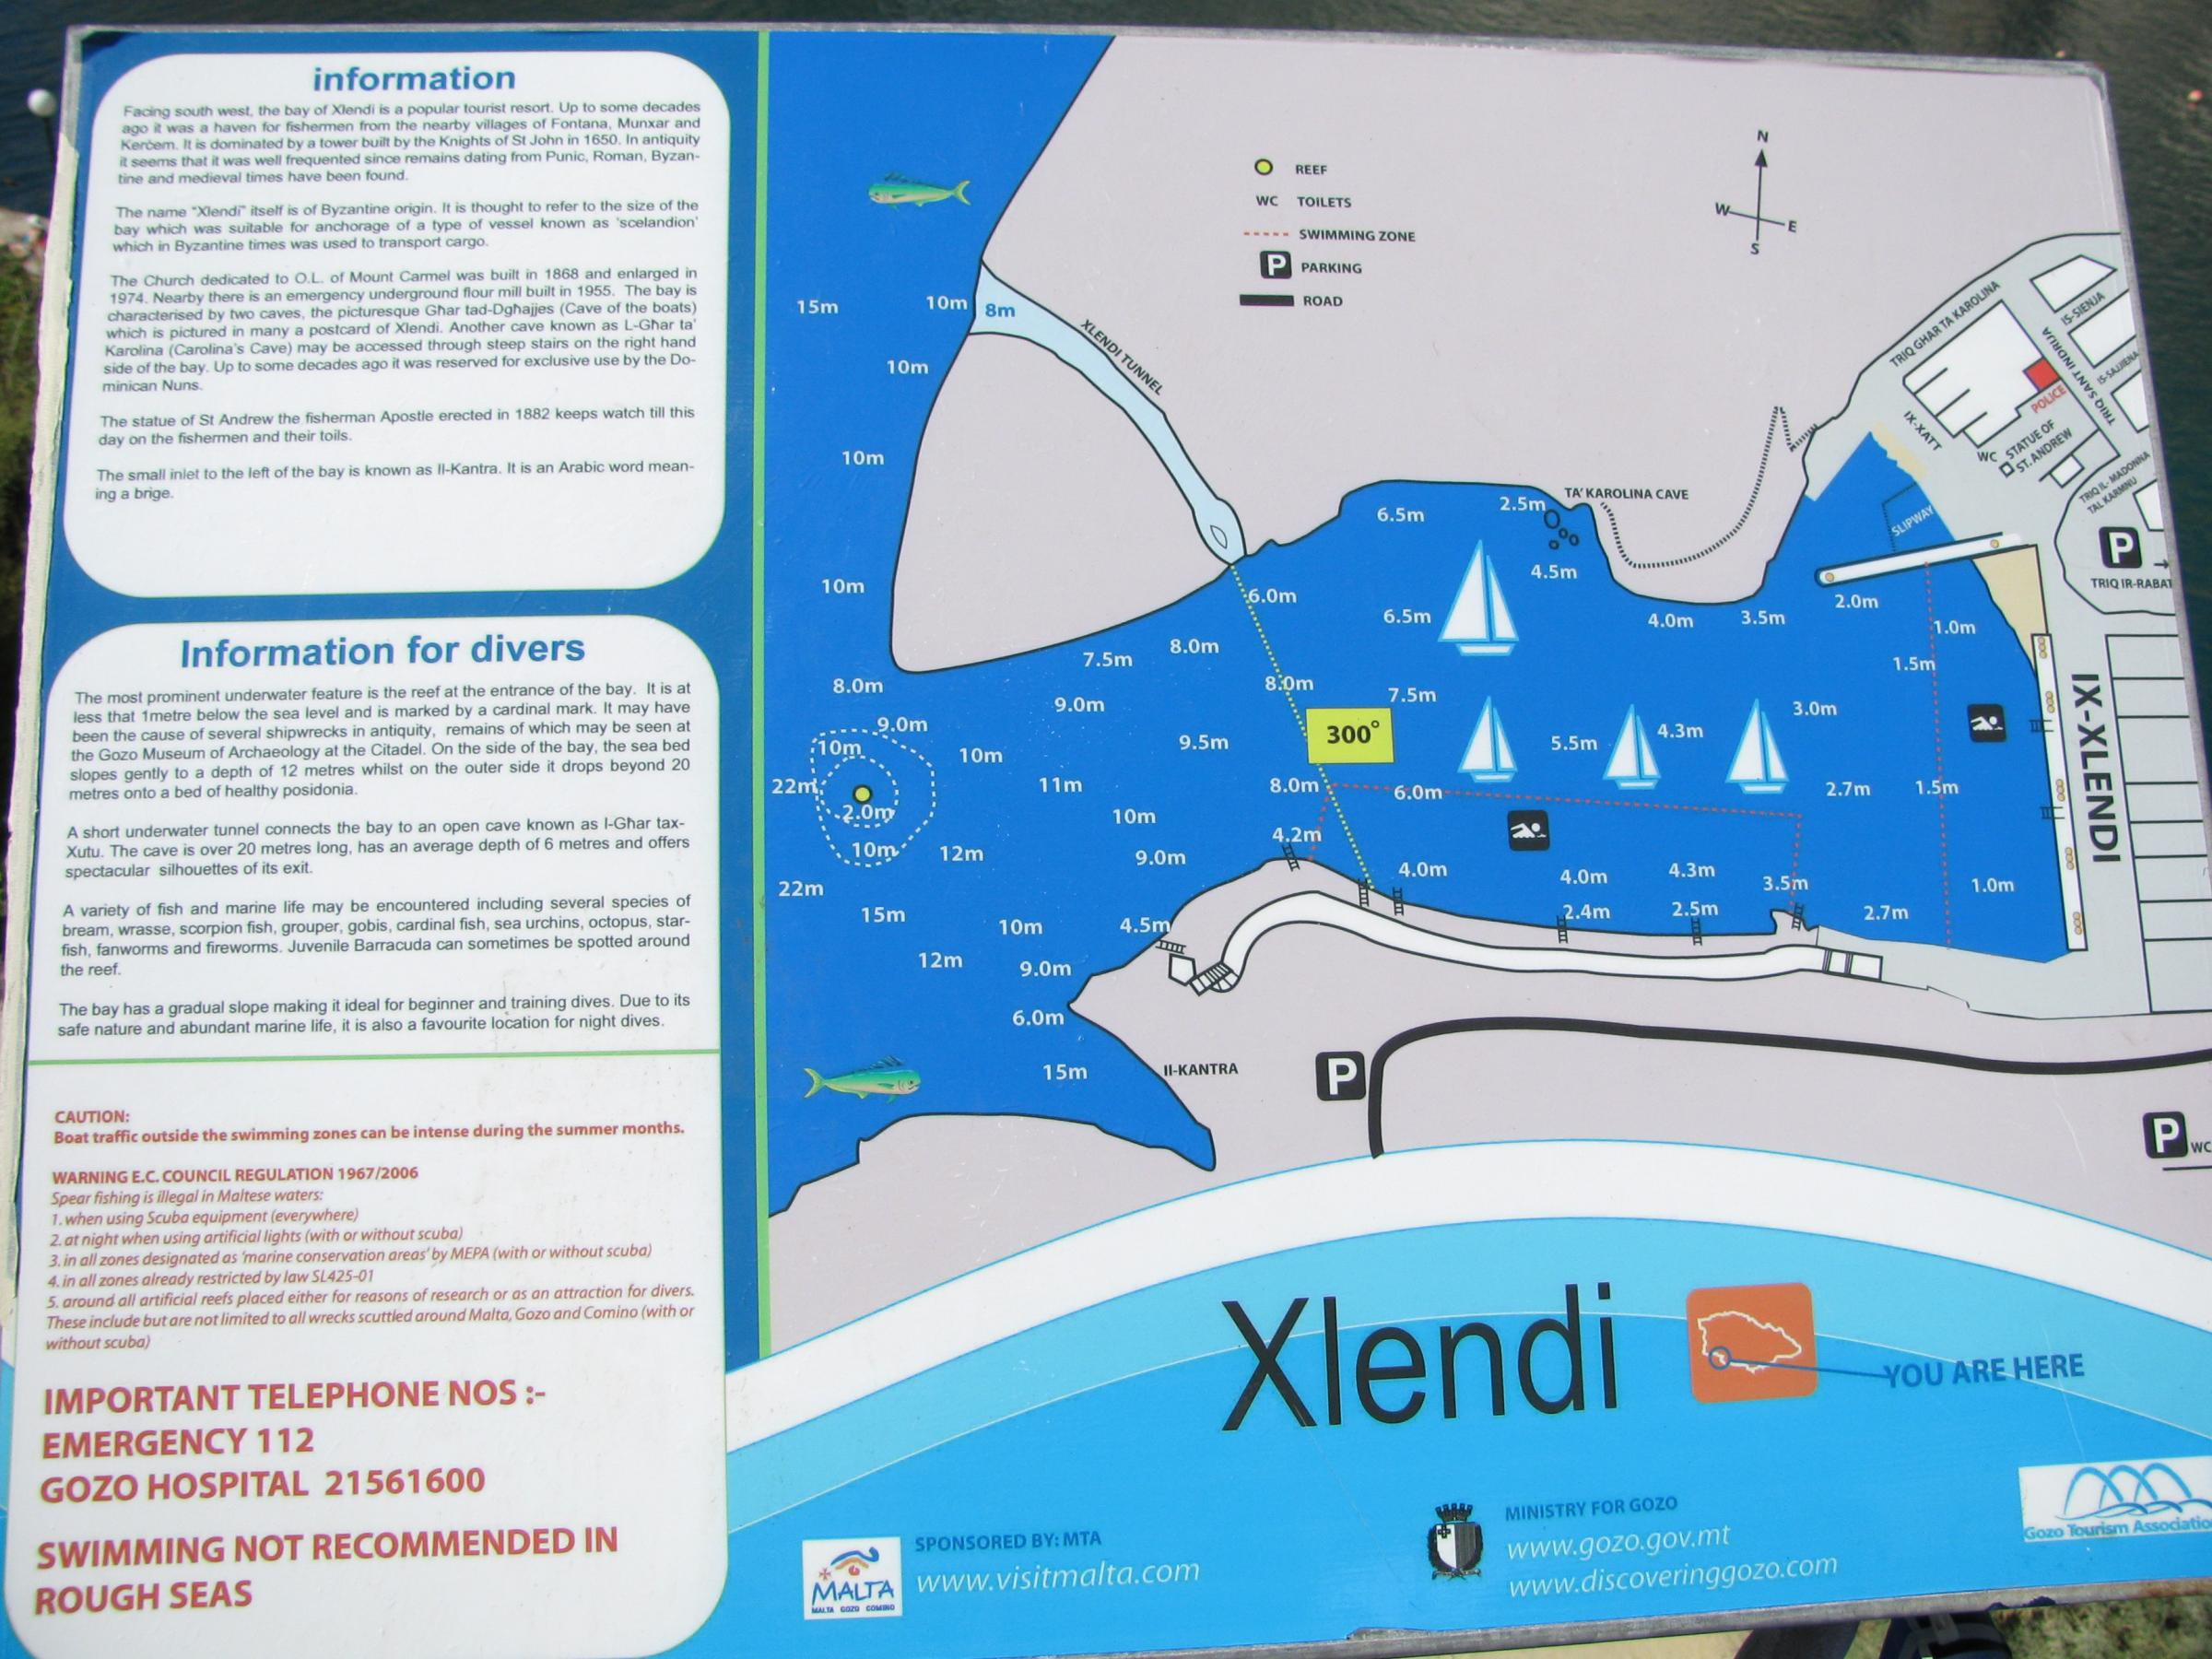 Map of Xlendi Bay